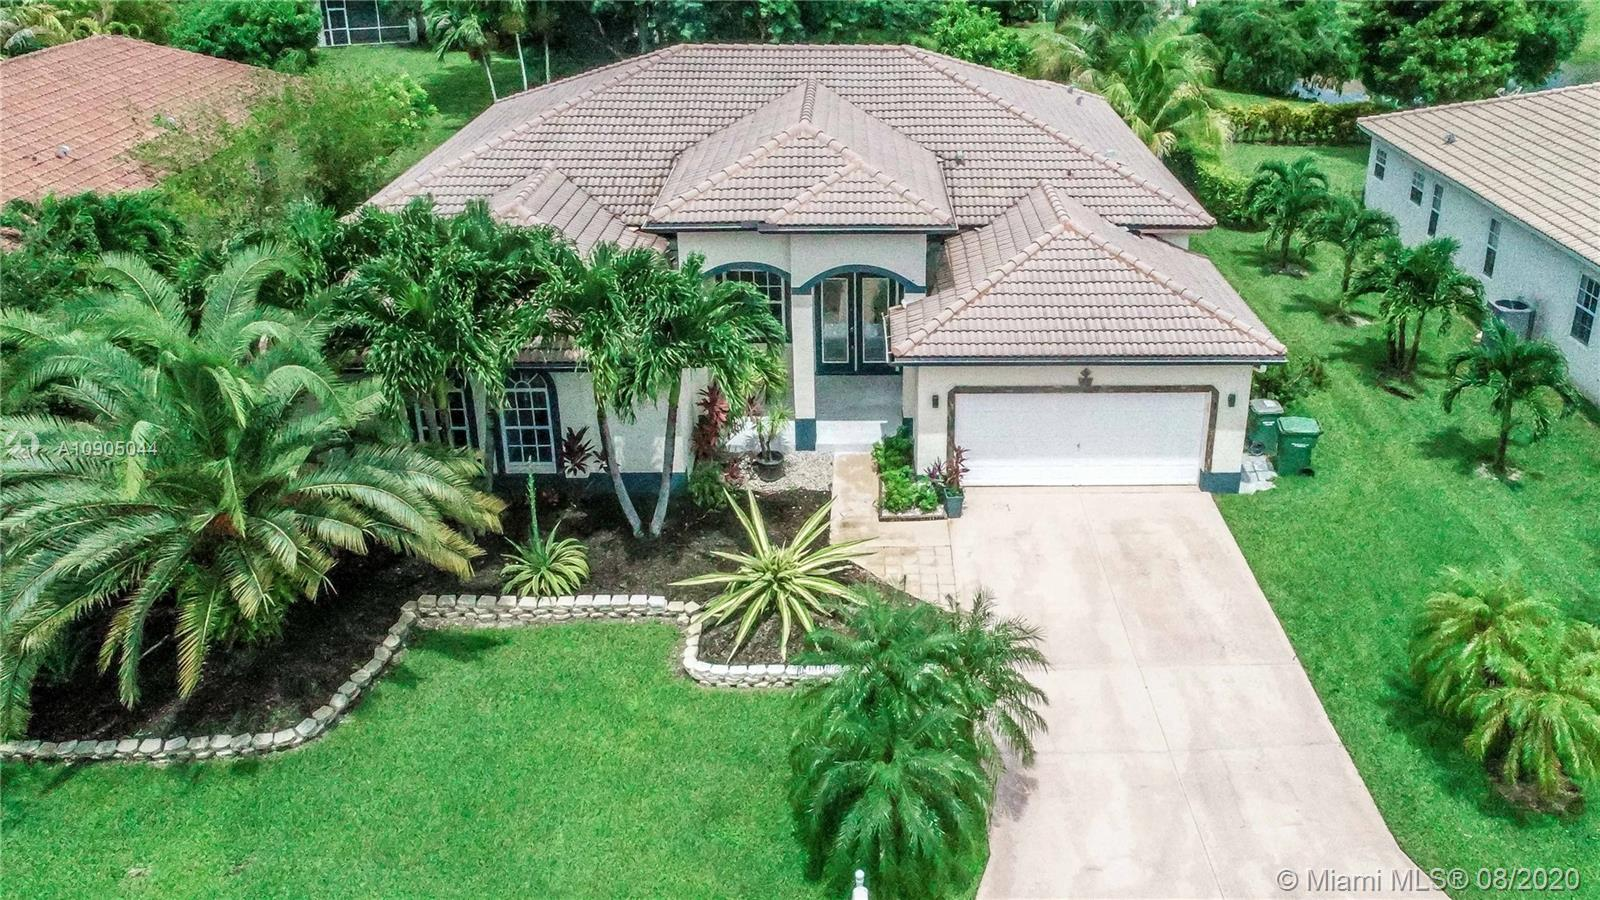 2830 Fairways Dr Property Photo - Homestead, FL real estate listing